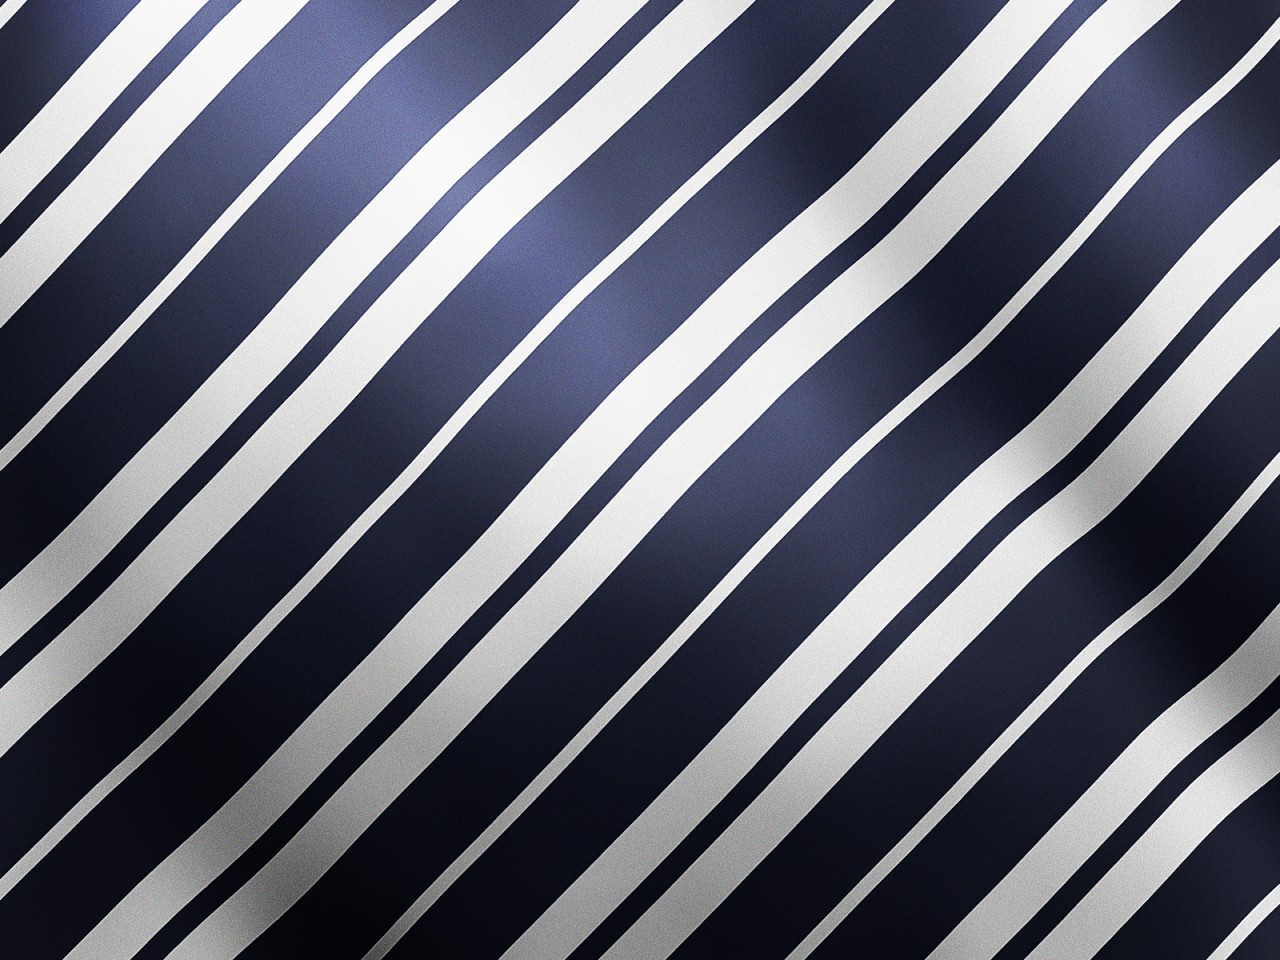 Blue and White Stripes - HD Wallpapers